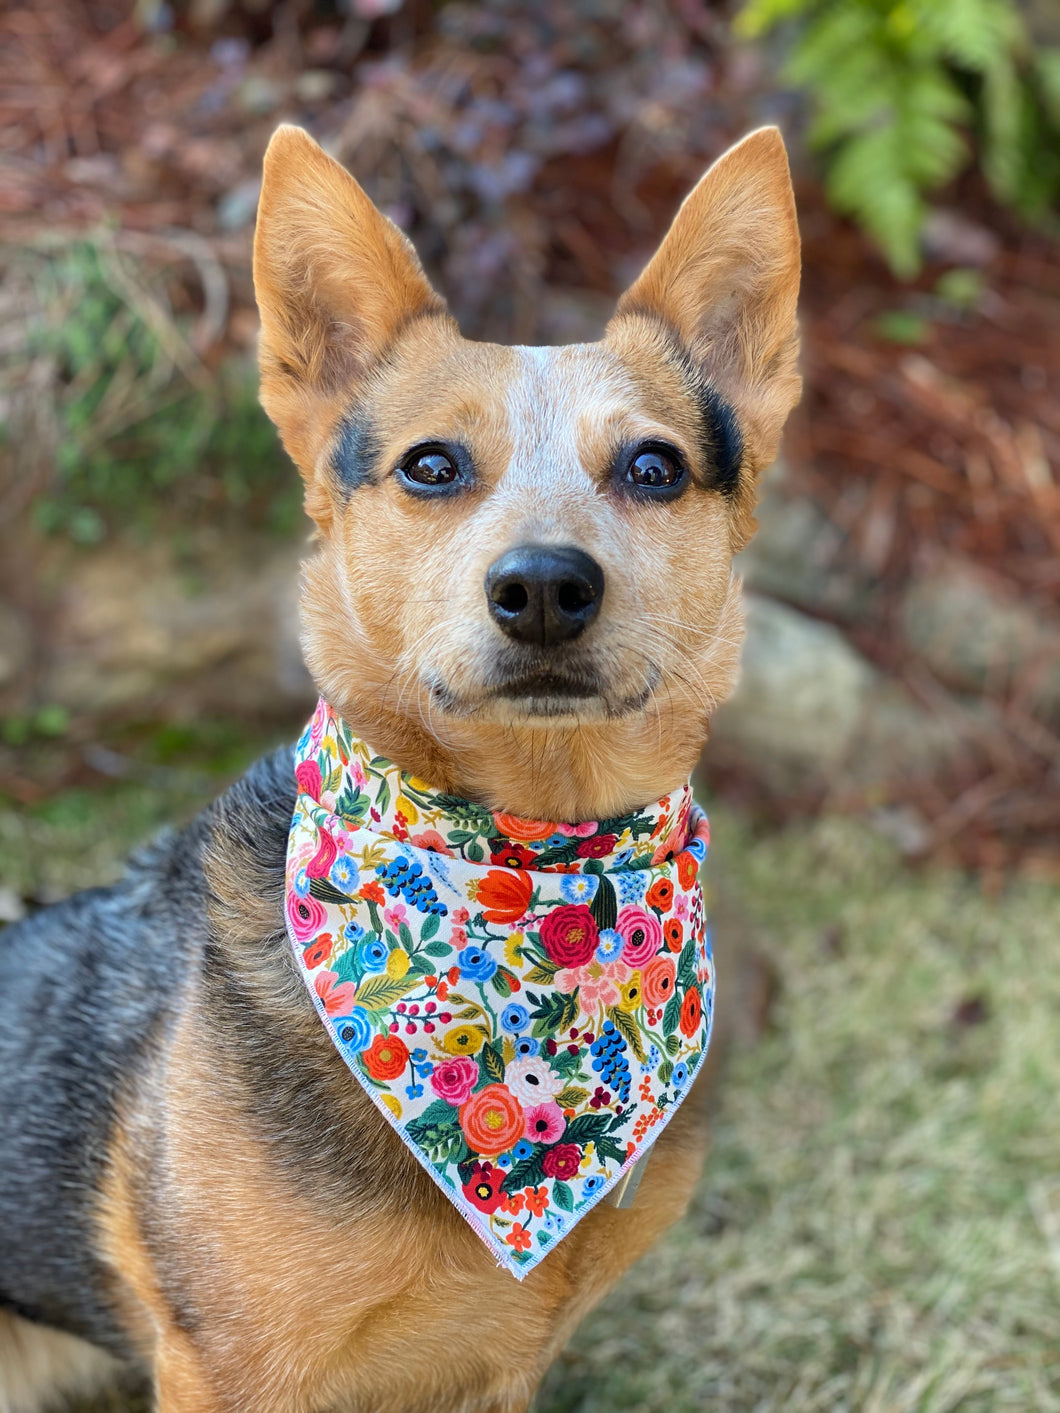 Tie on Garden Party Dog Bandana